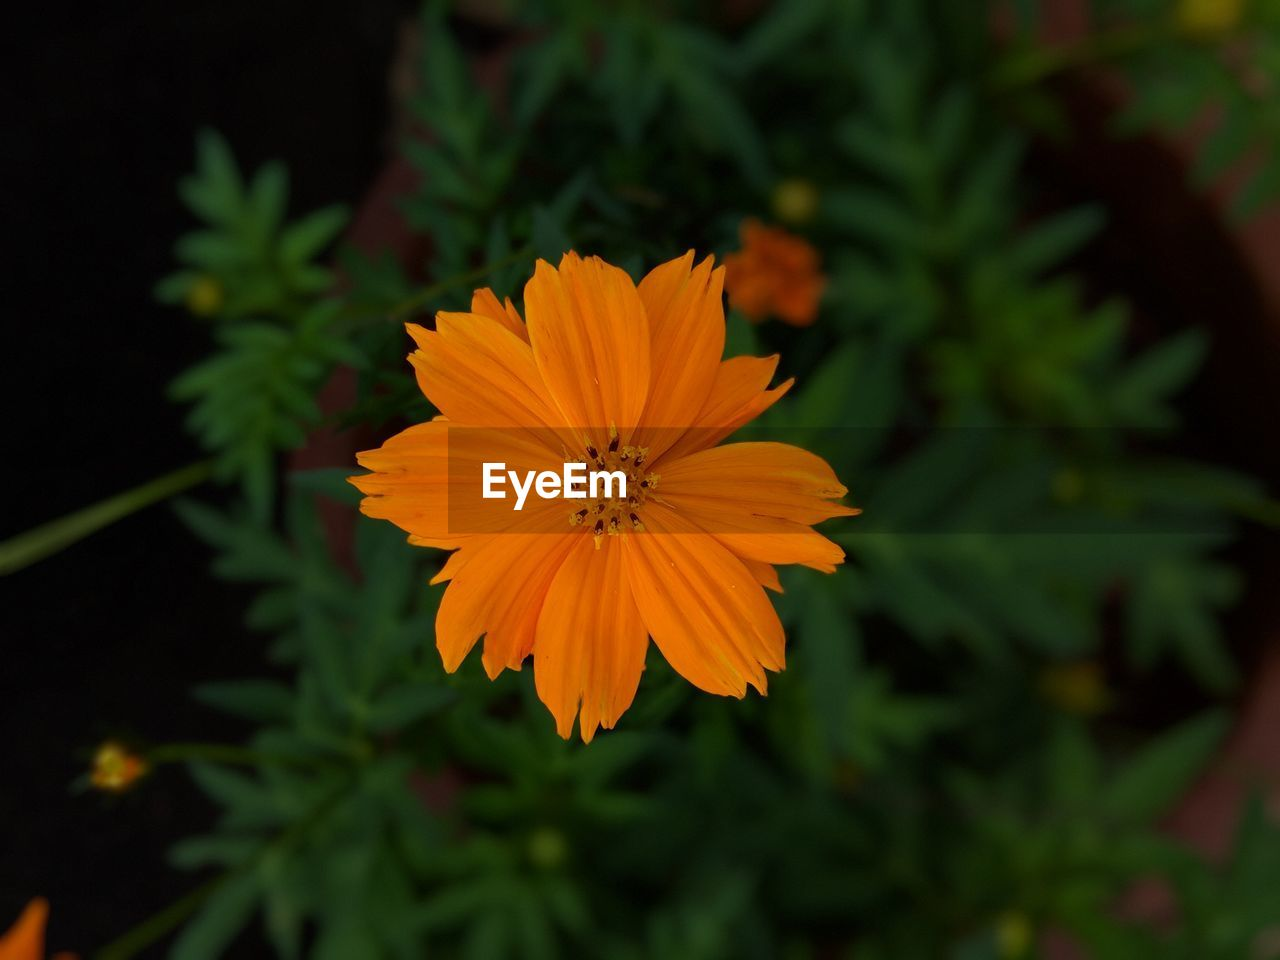 flowering plant, flower, petal, freshness, plant, fragility, inflorescence, vulnerability, flower head, beauty in nature, growth, close-up, orange color, focus on foreground, pollen, nature, no people, yellow, cosmos flower, outdoors, gazania